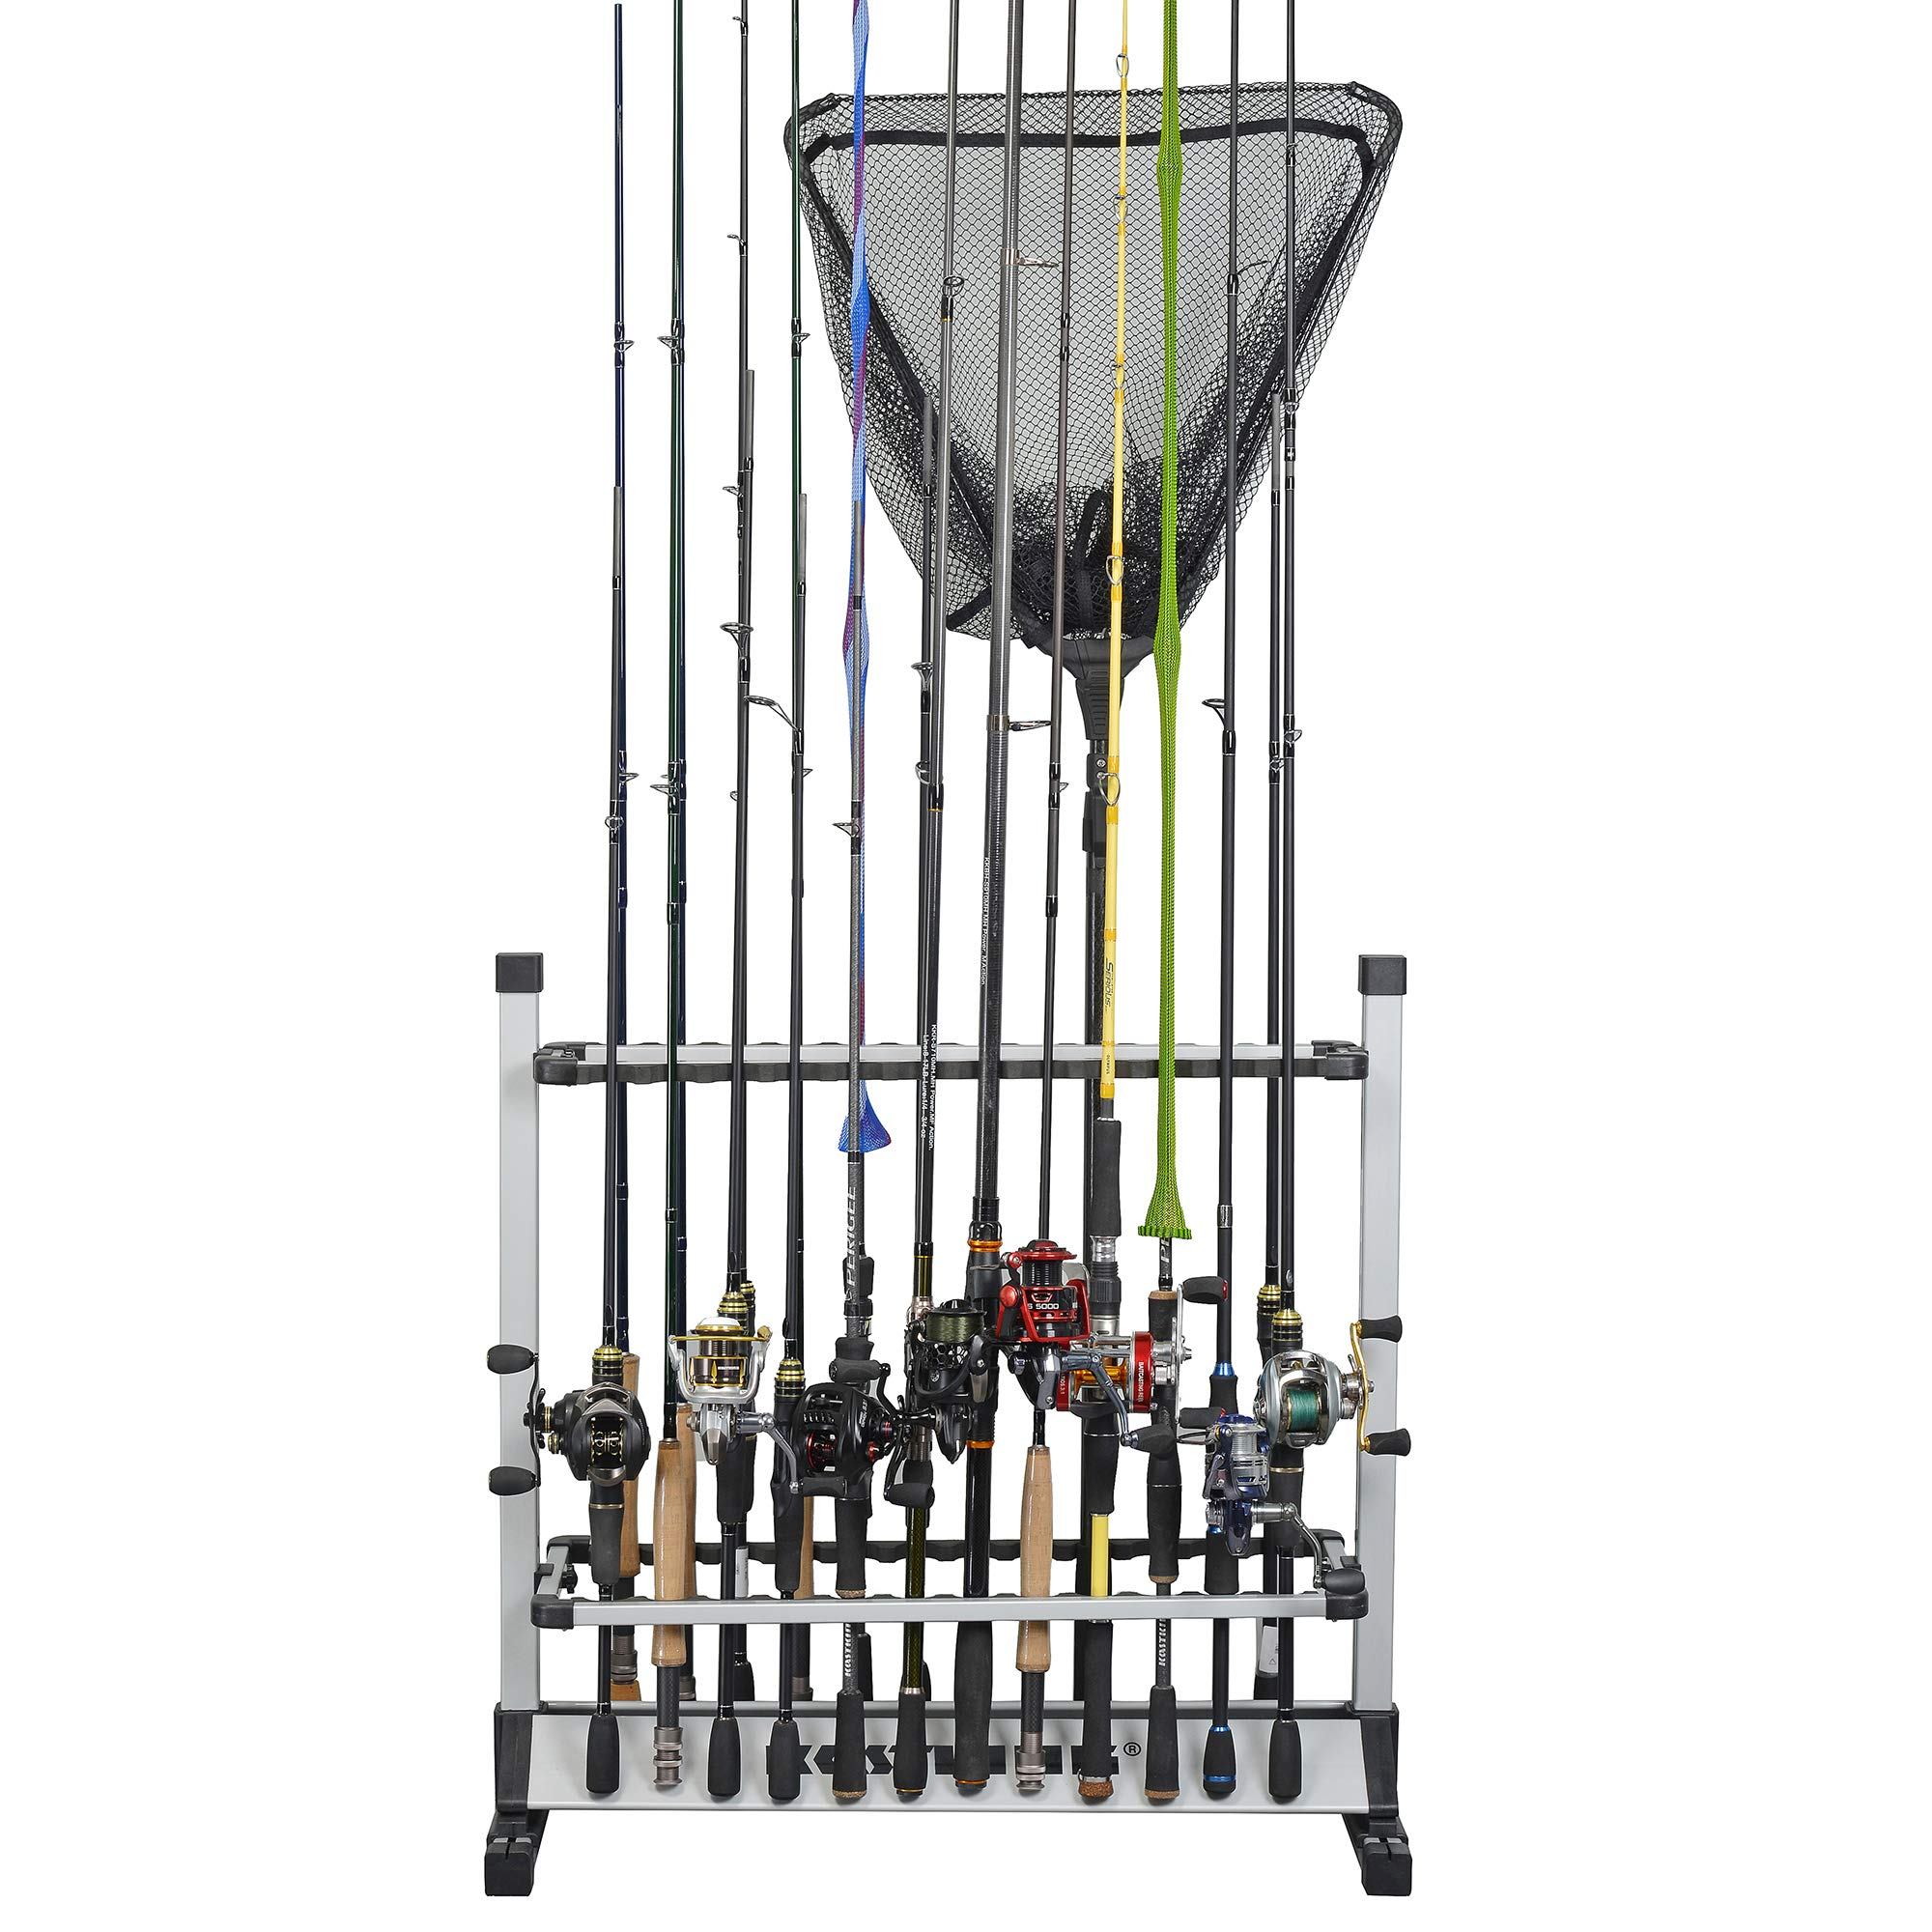 KastKing Fishing Rod Holder, 24 Rods Rack Silver Black by KastKing (Image #3)